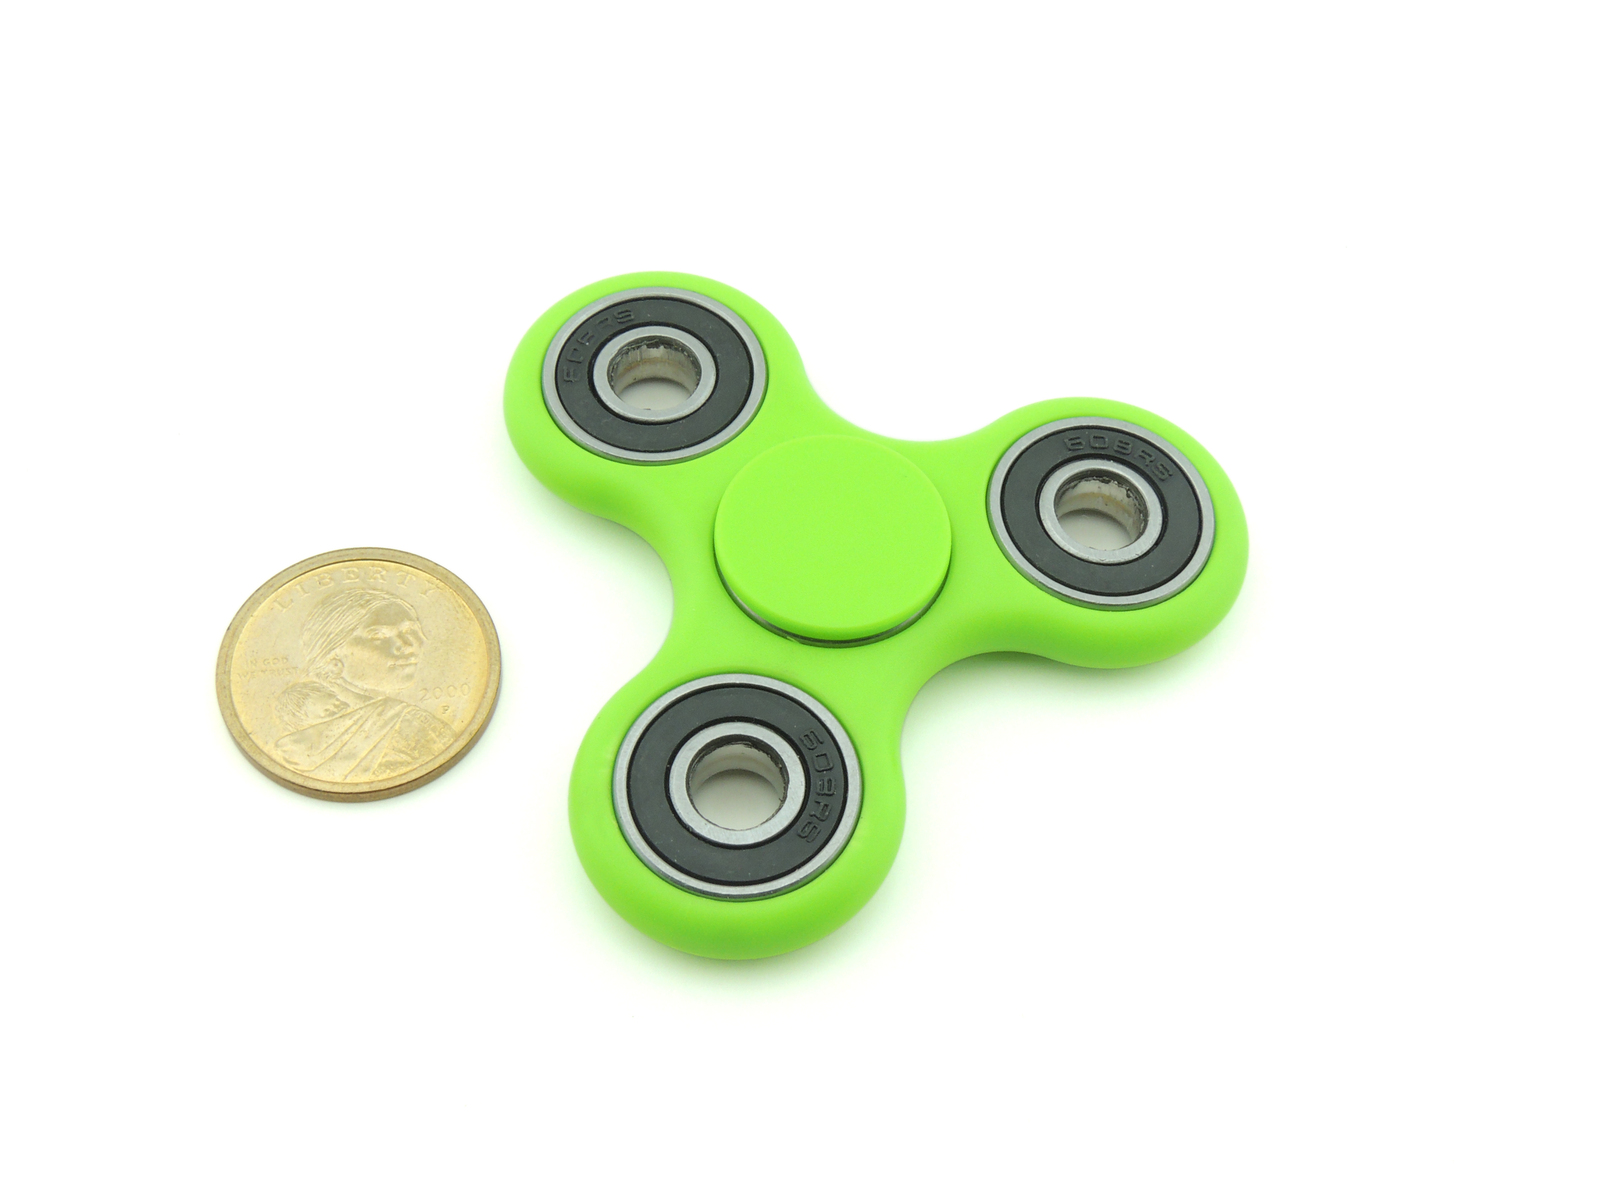 Tri Fidget Spinner EDC Finger Hand Spinner Focus Anxiety Stress Relief Desk Toy